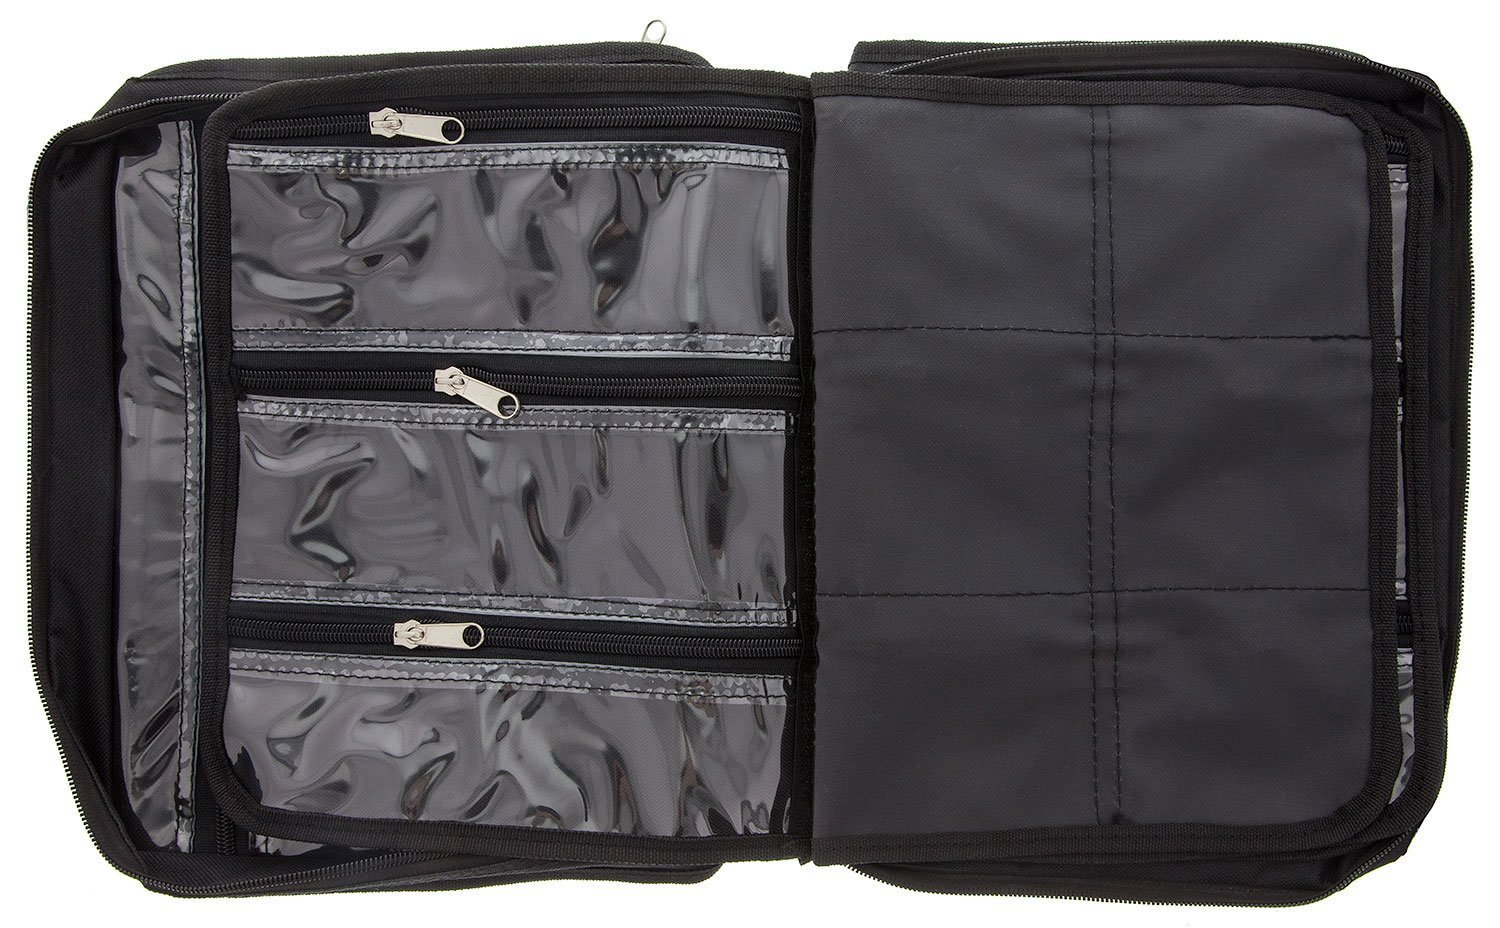 BeadSmith Black Crafter's Tote Bag, with 2 Removable Pockets and 23 Compartments 12x10 inch UK Shop d